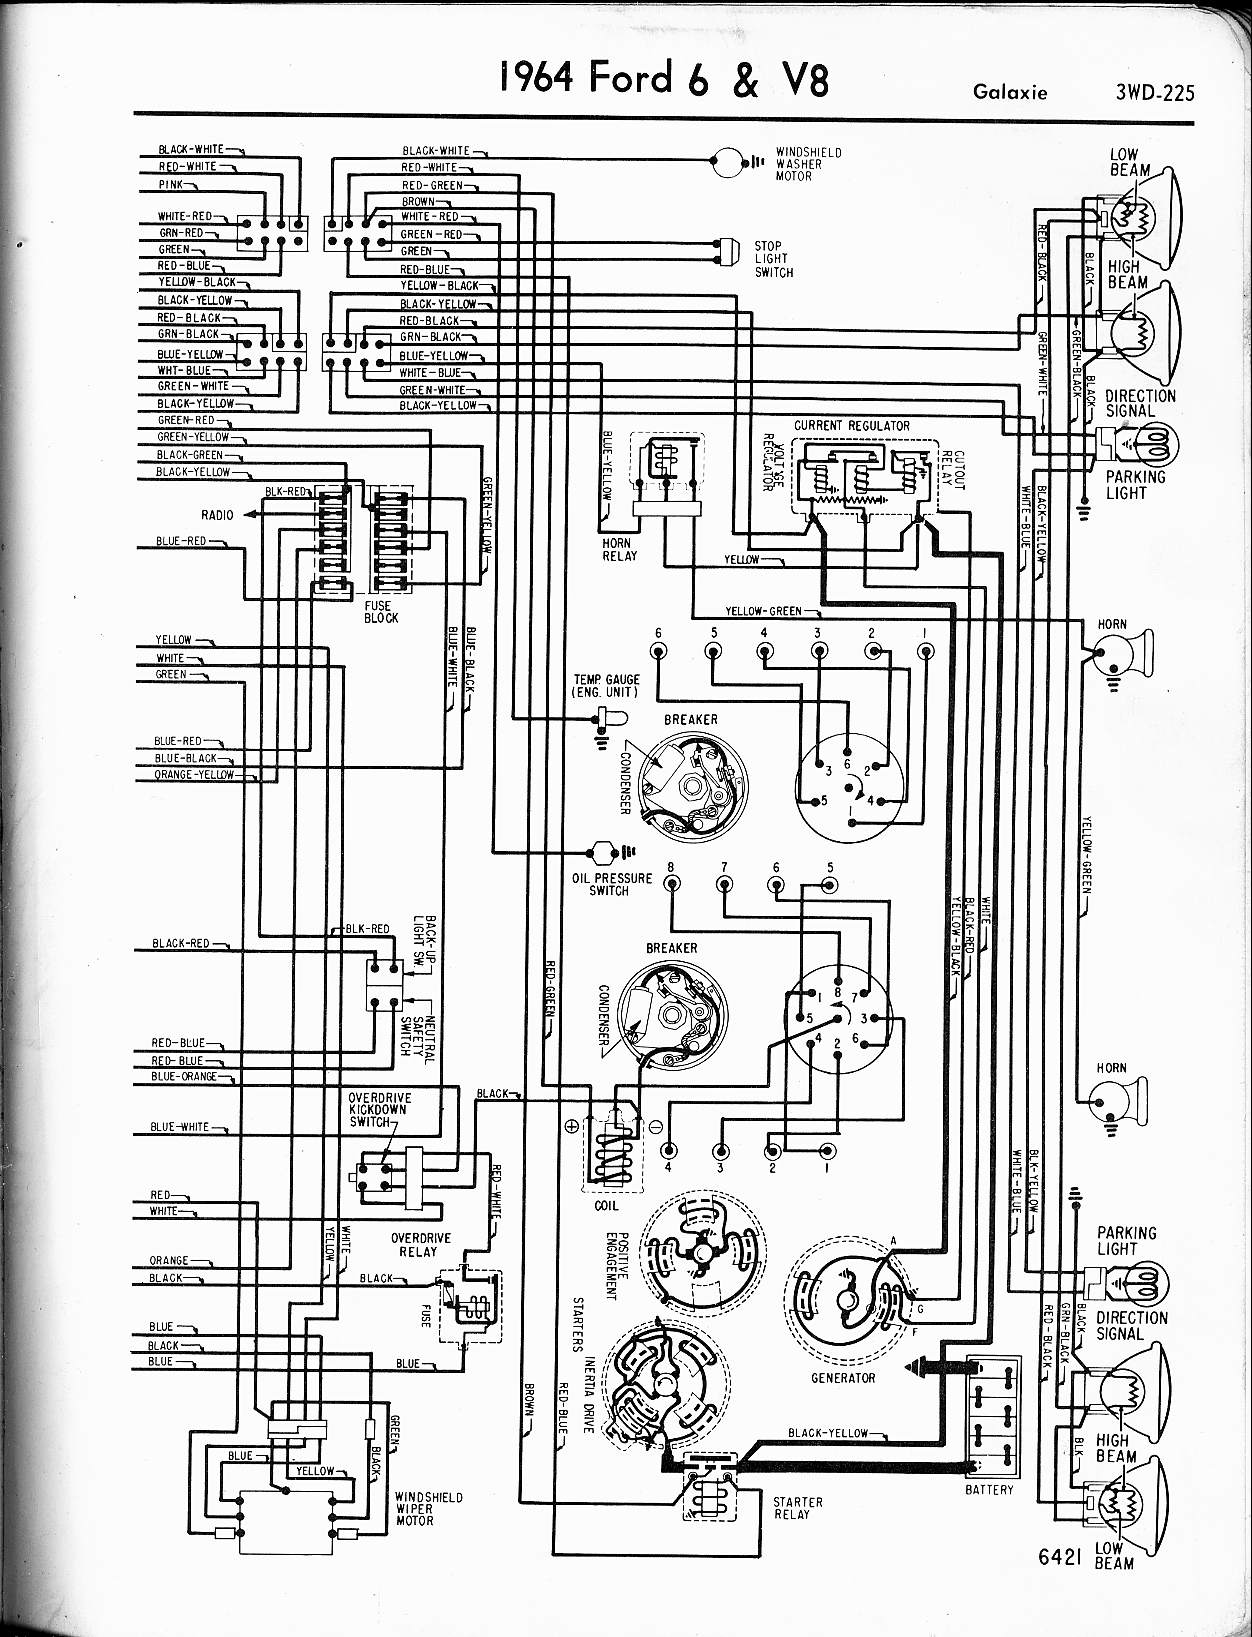 1957 ford fairlane 500 ignition diagram 1957 ford fairlane 500 wiring harness